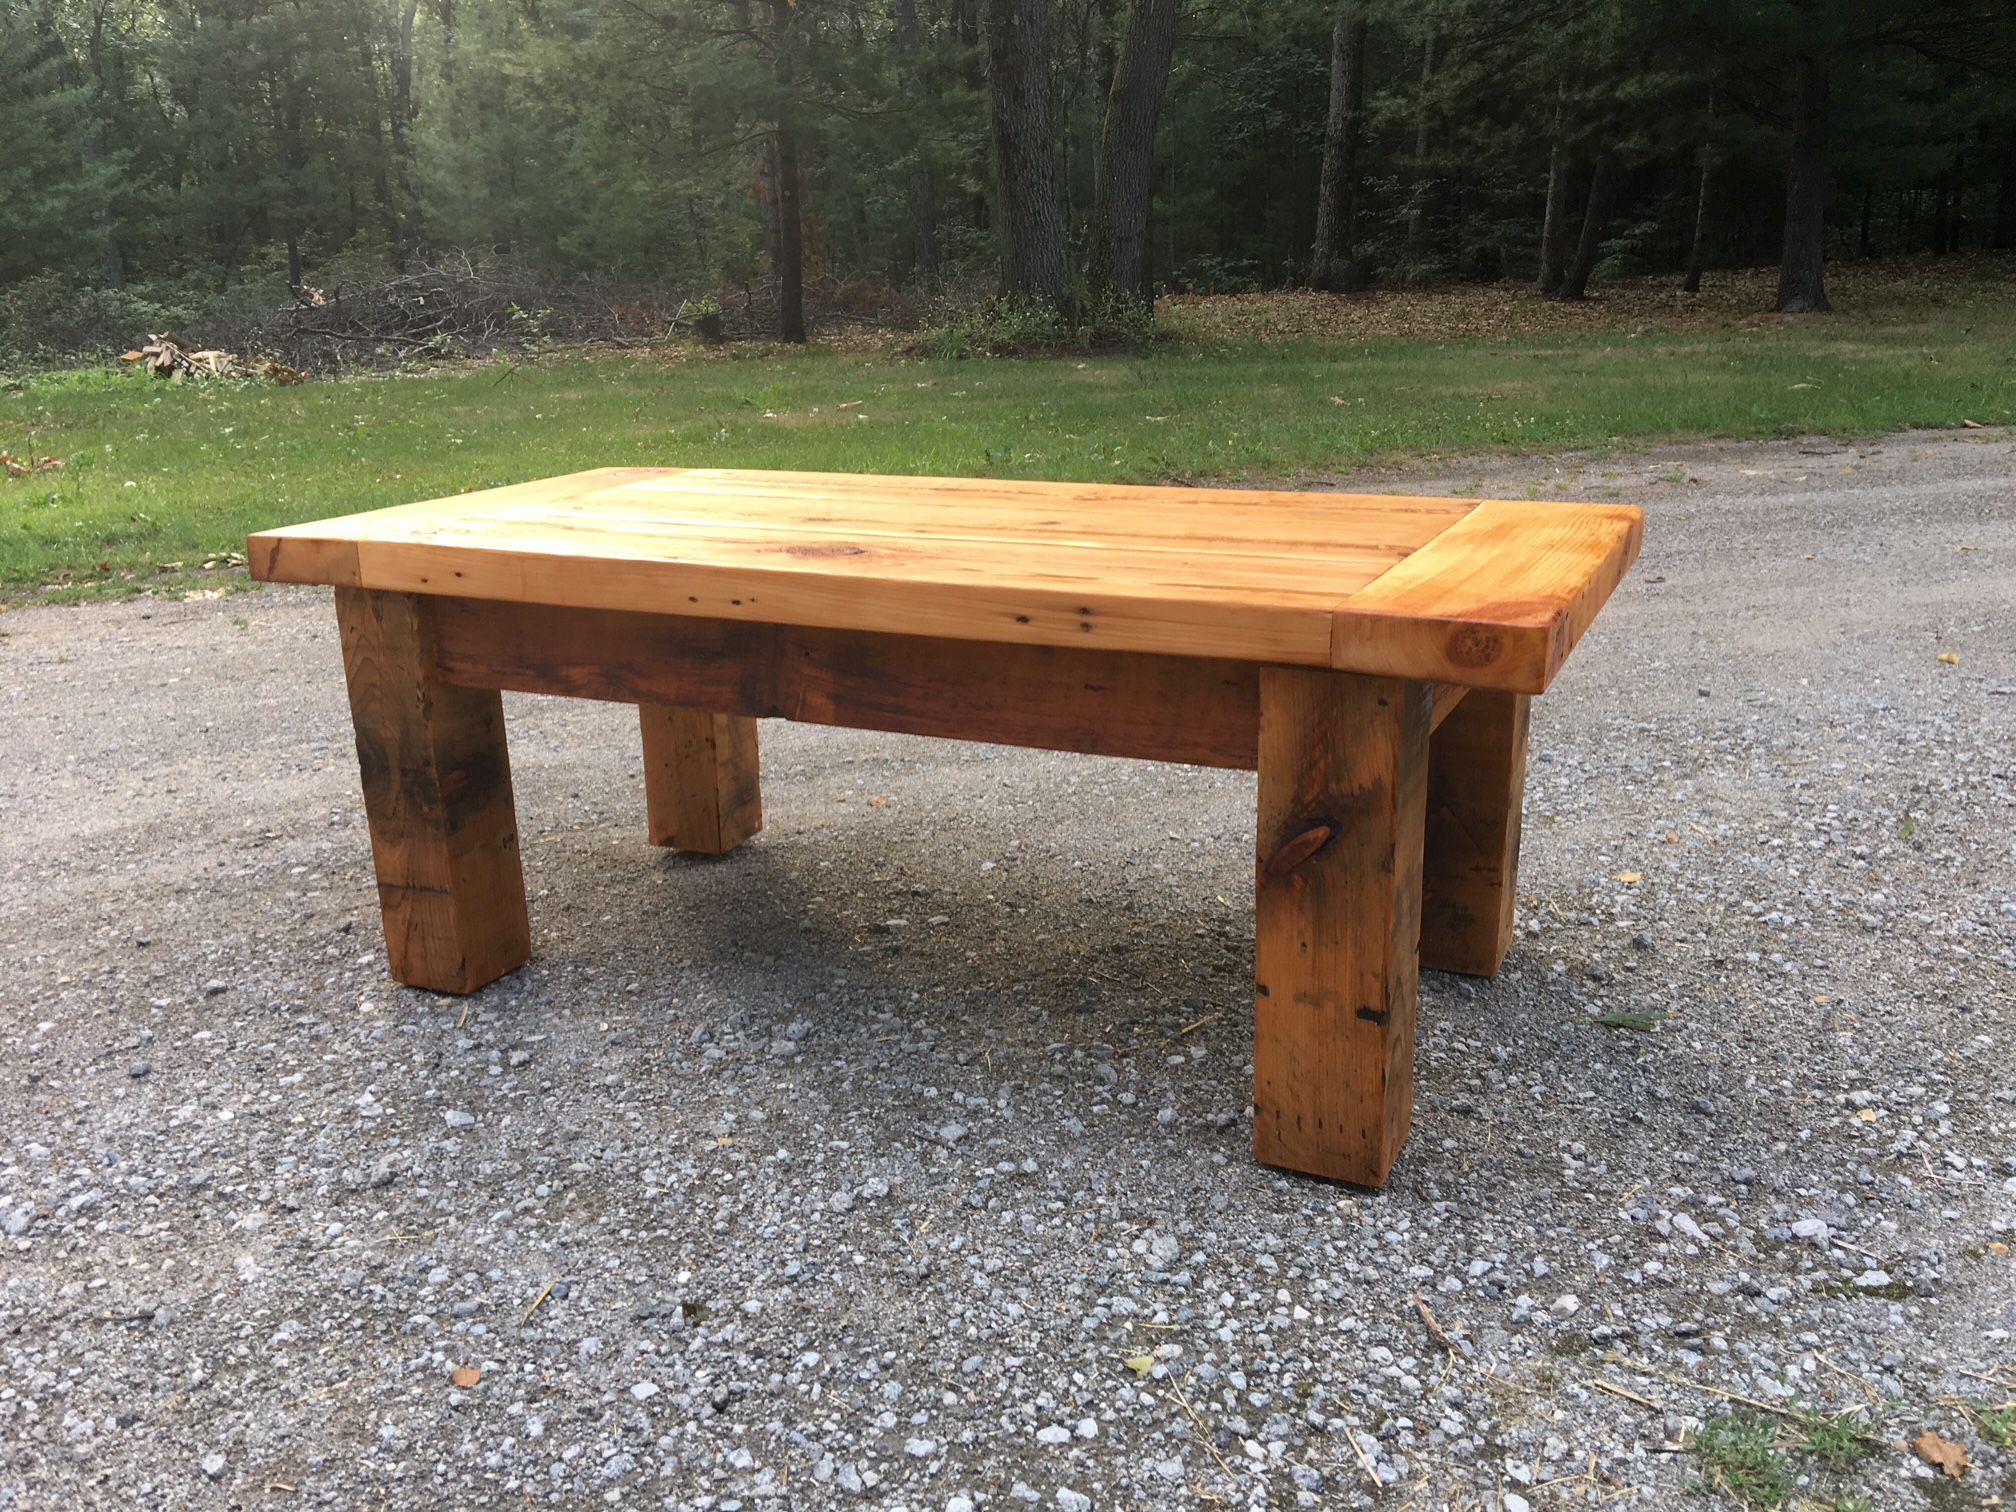 Buy a hand made rustic barnwood breadboard ends coffee table made to order from jkdesigns Coffee tables rustic